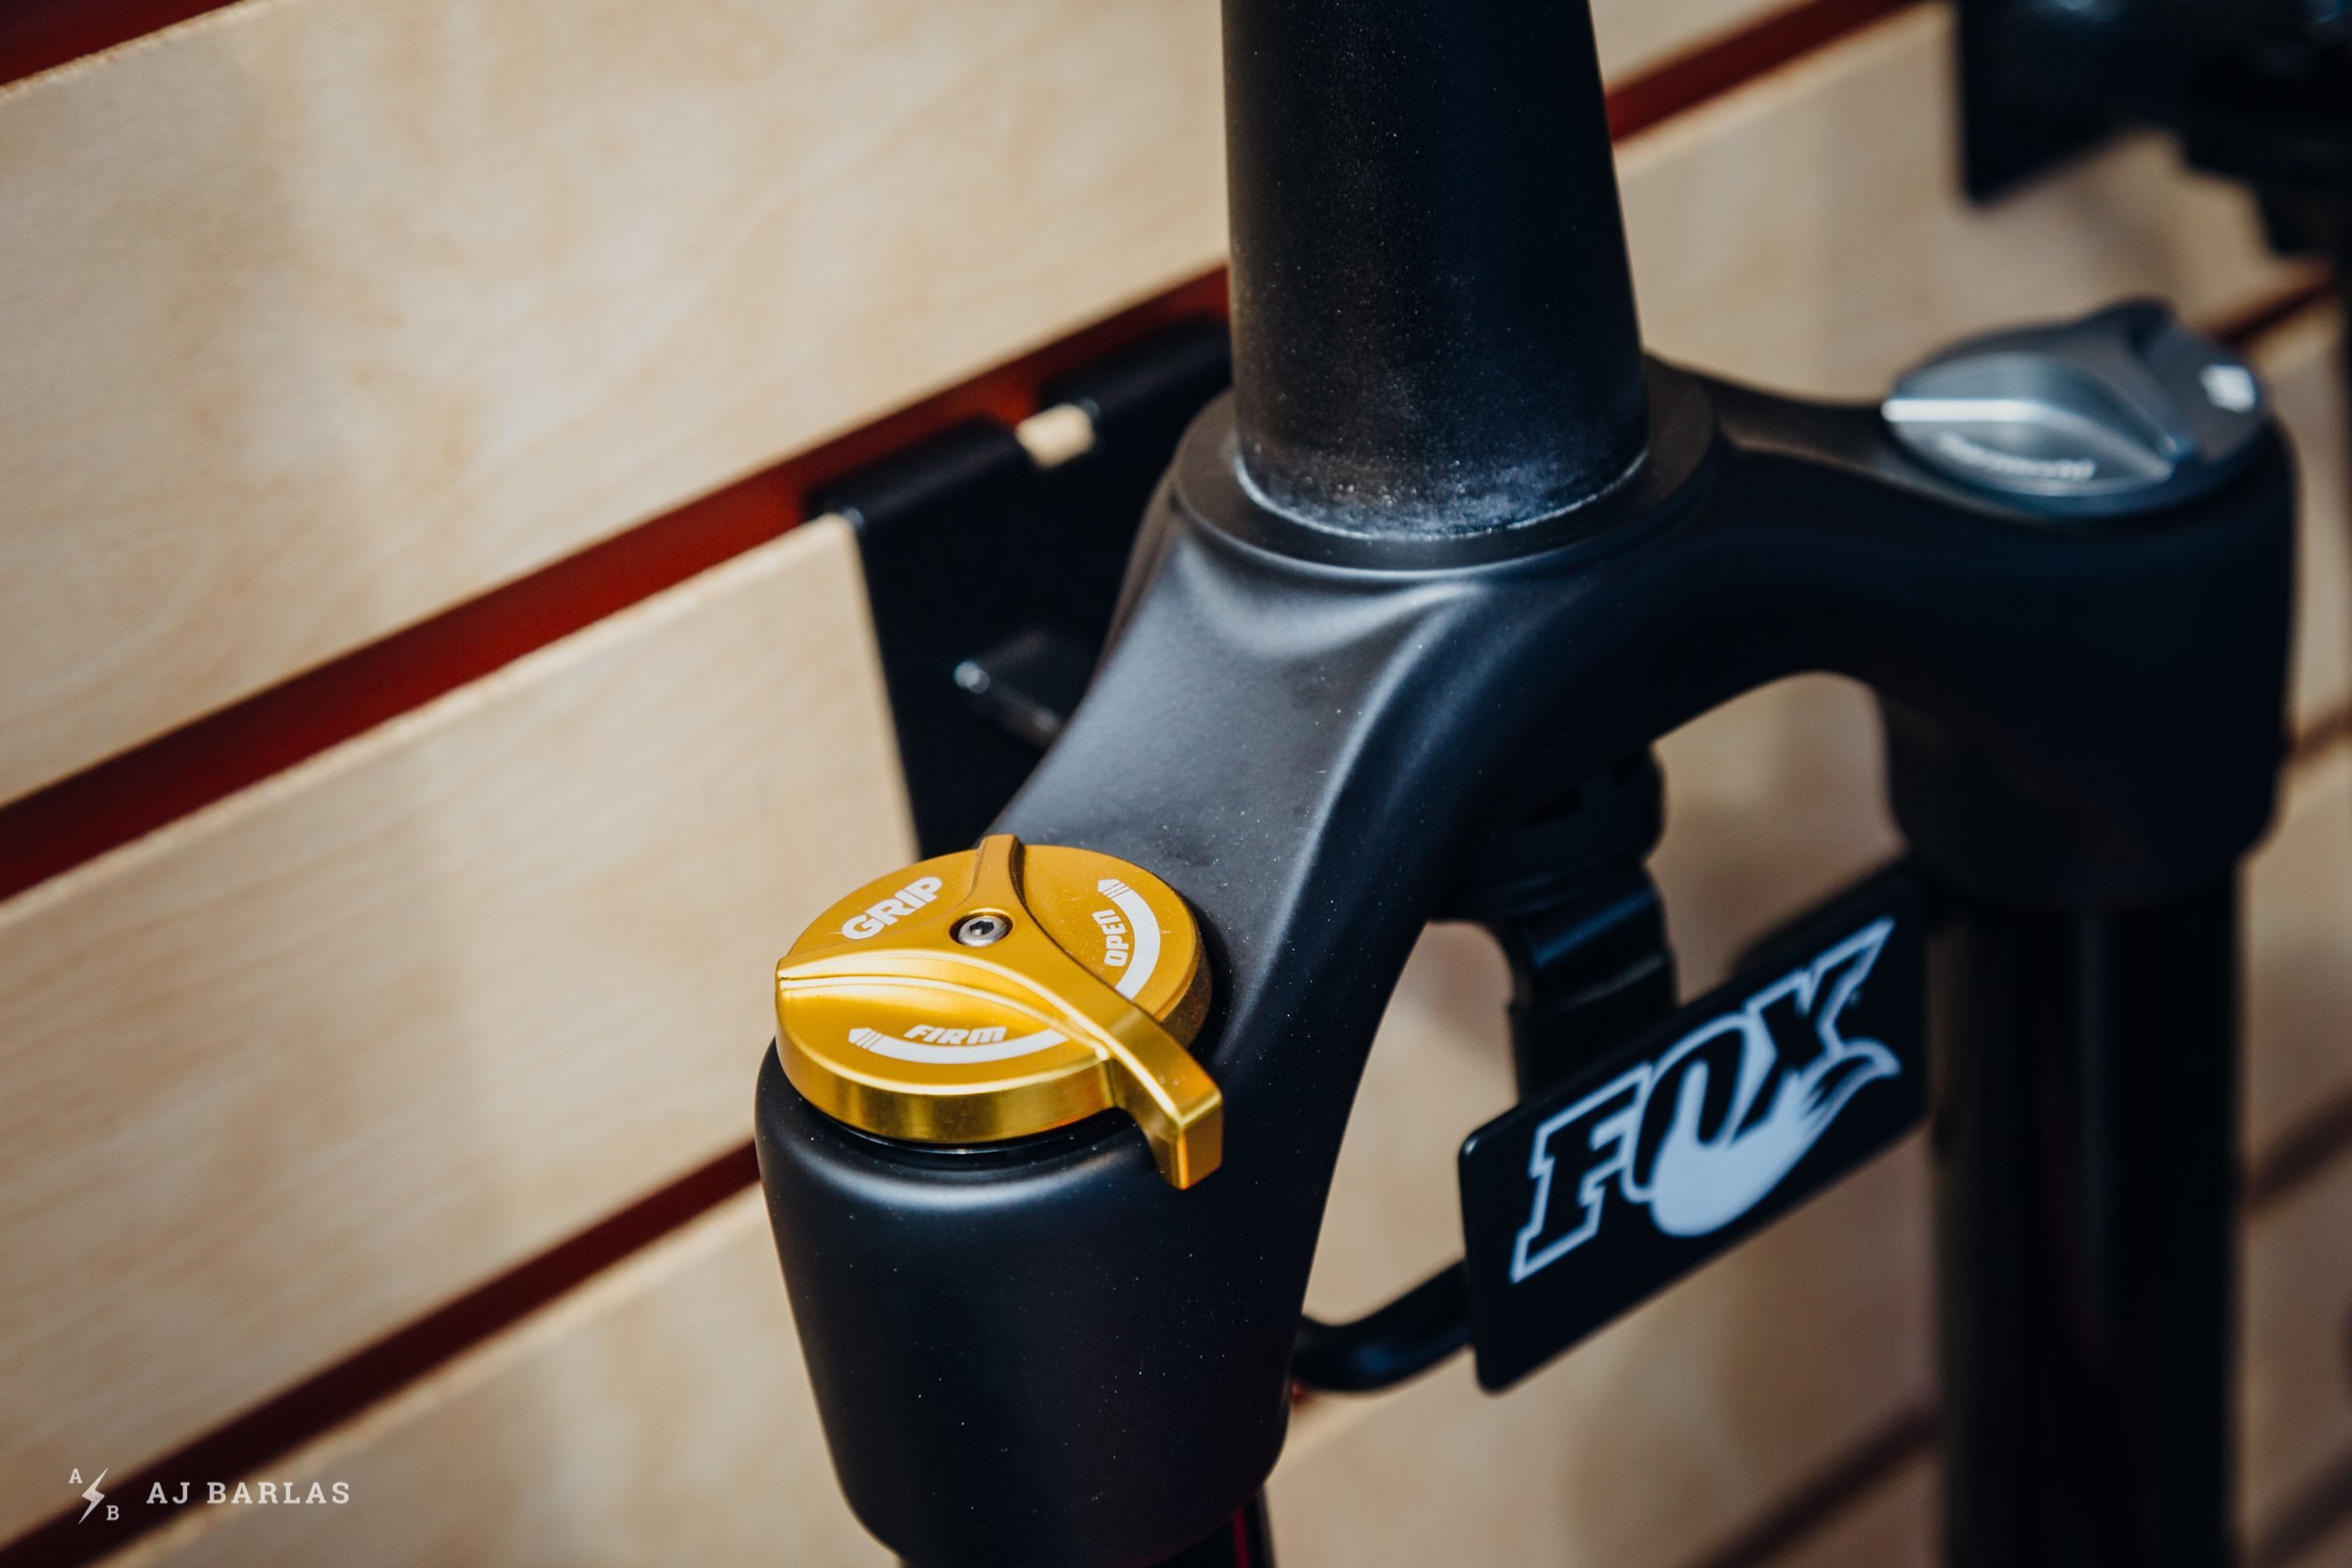 The Marzocchi Z1 uses the GRIP damper